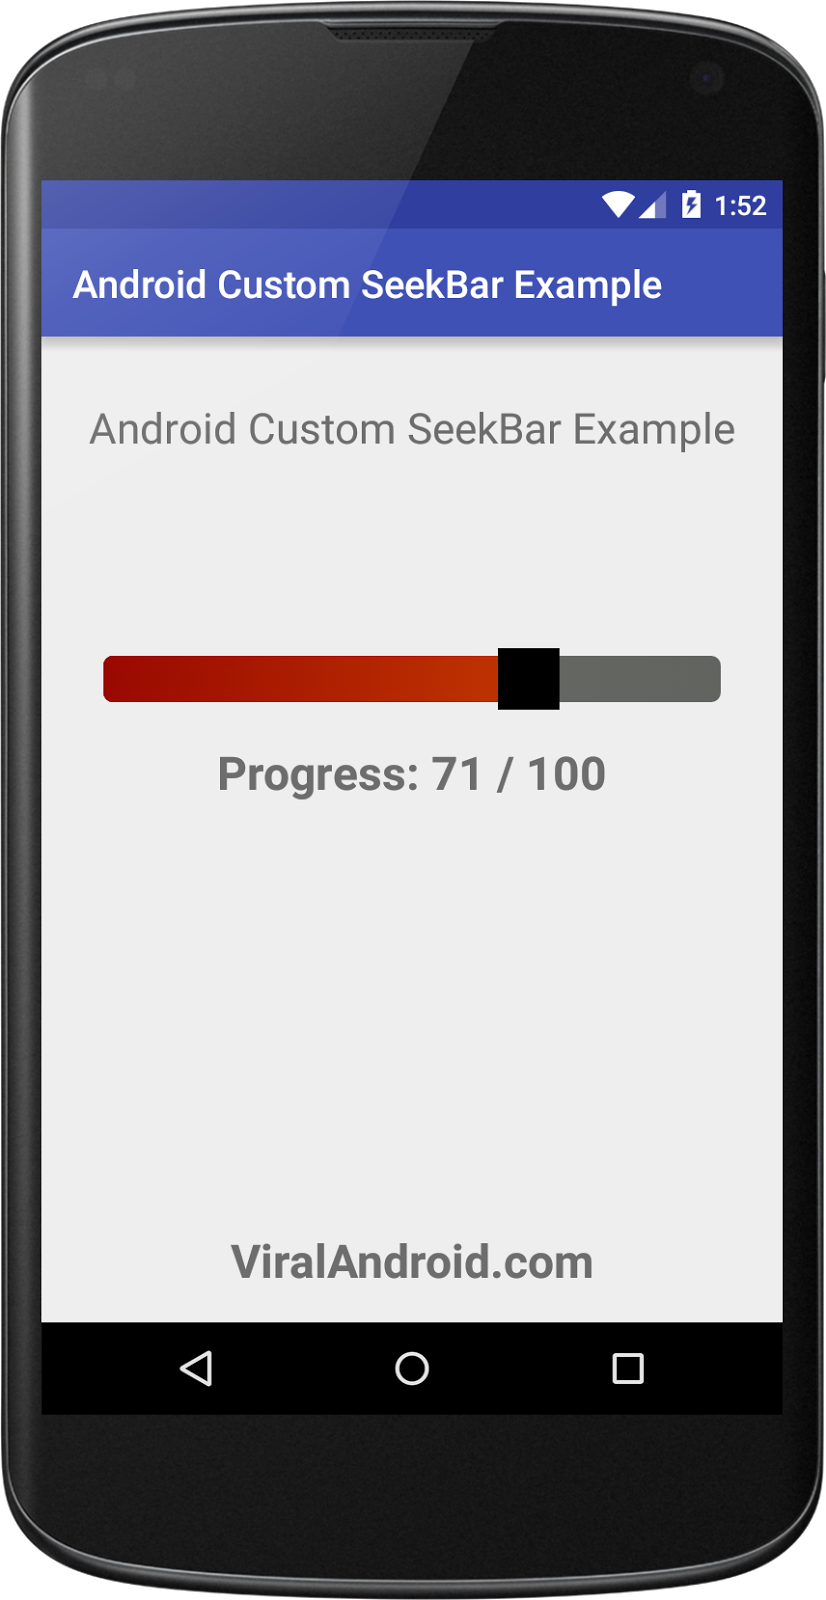 Android Custom SeekBar Example